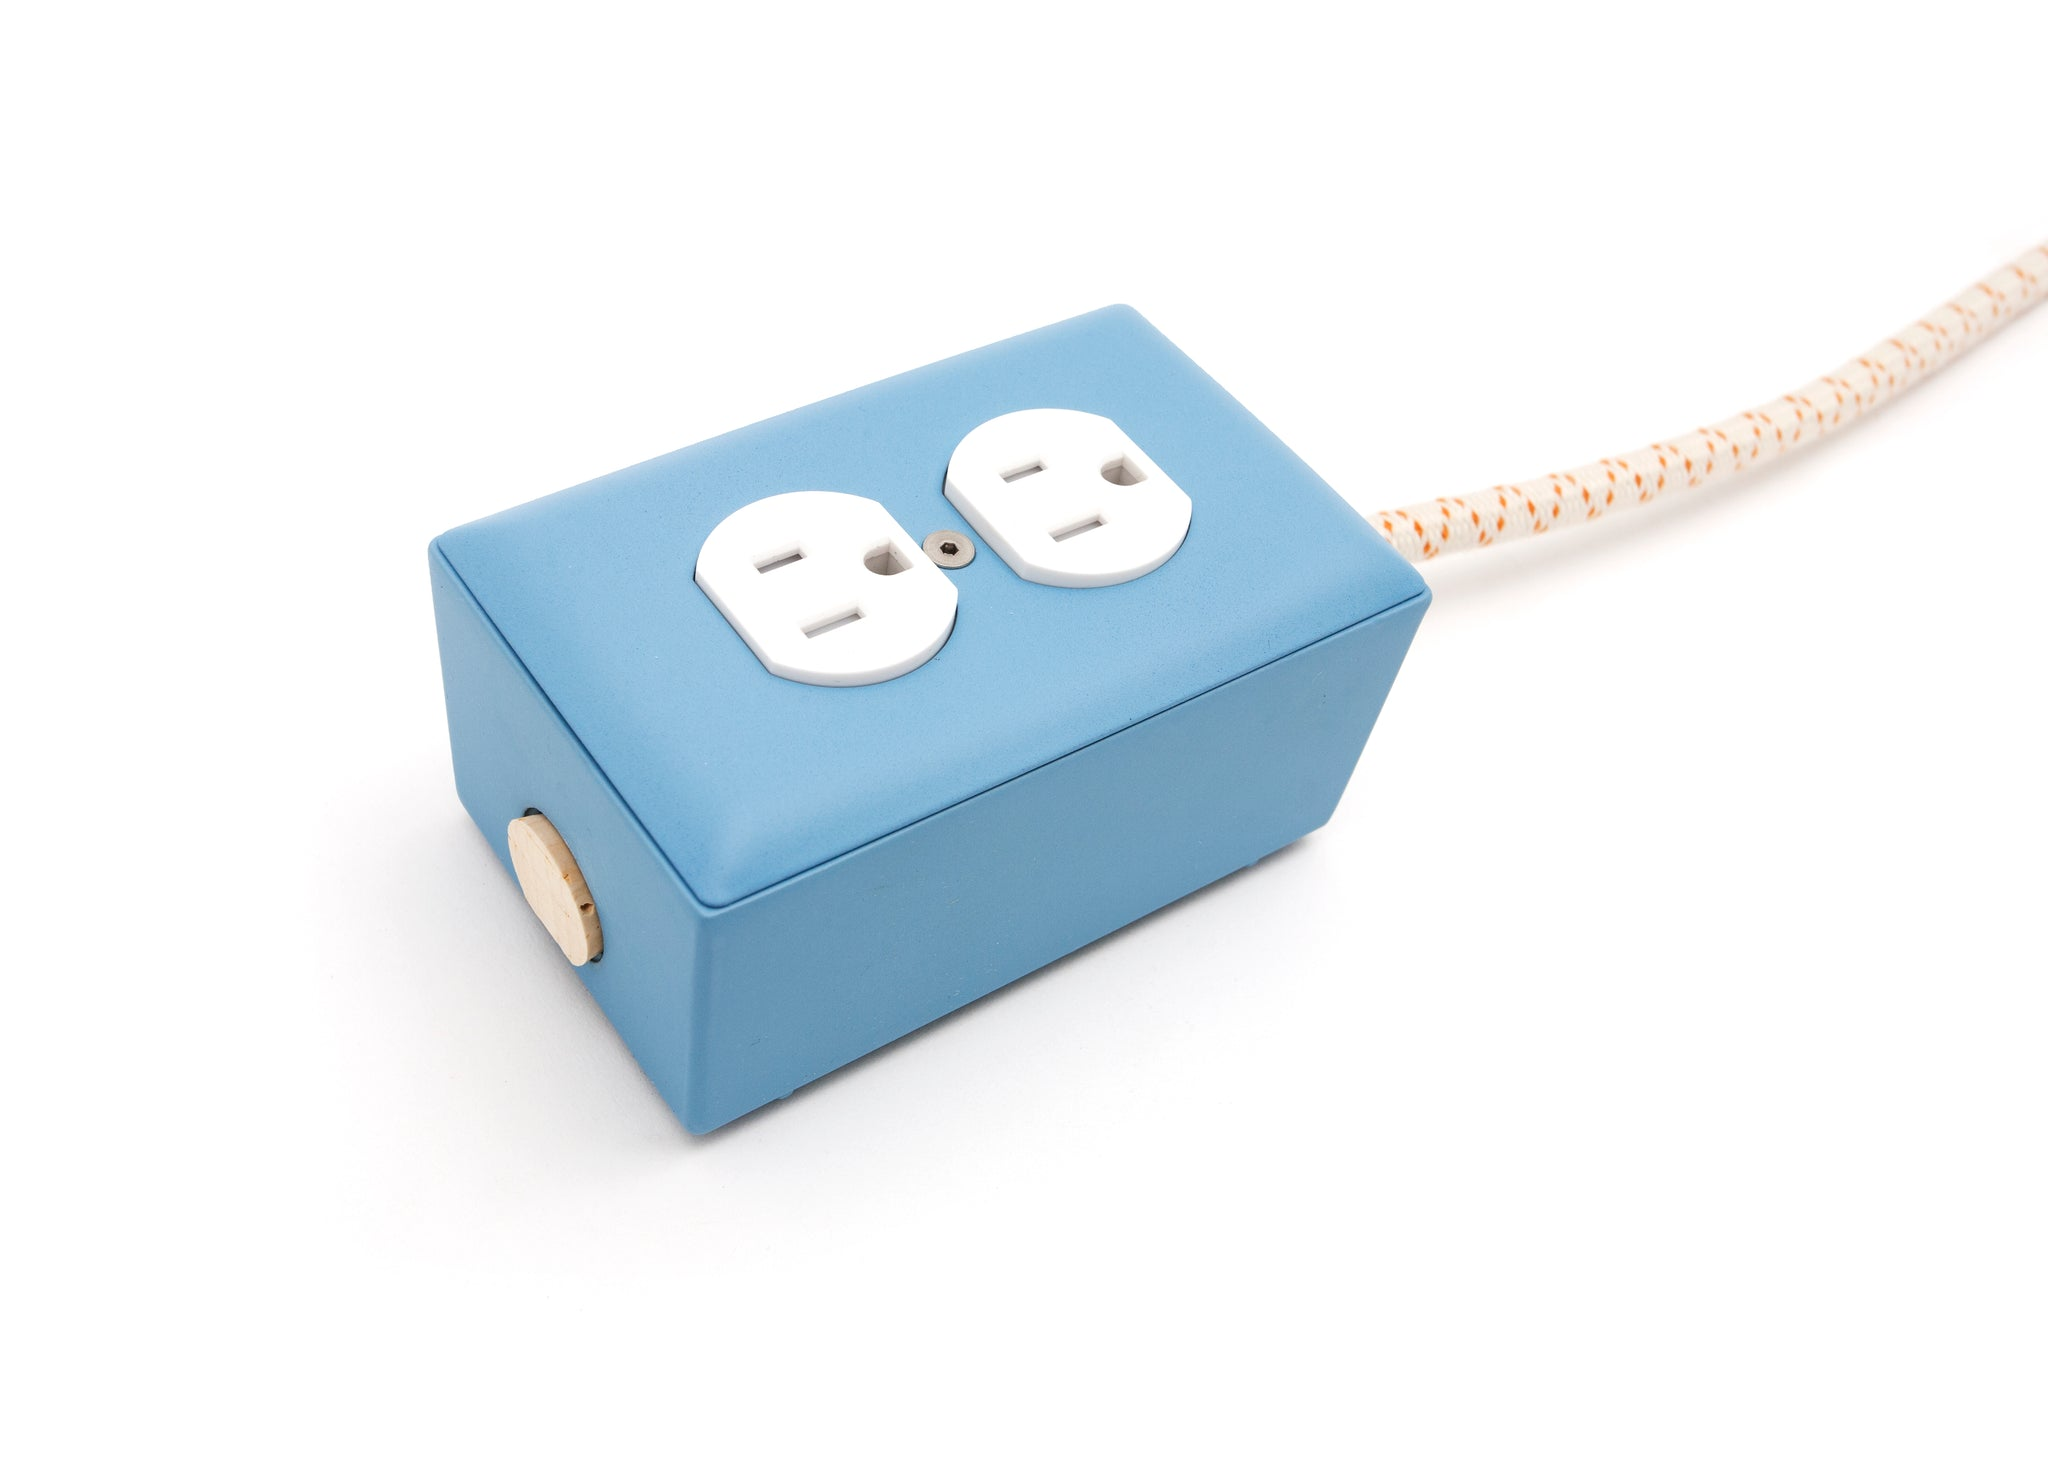 New! Martha Blue Extō - A Modern Dual-Tamper-Resistant Outlet, 15-AMP Extension Cord